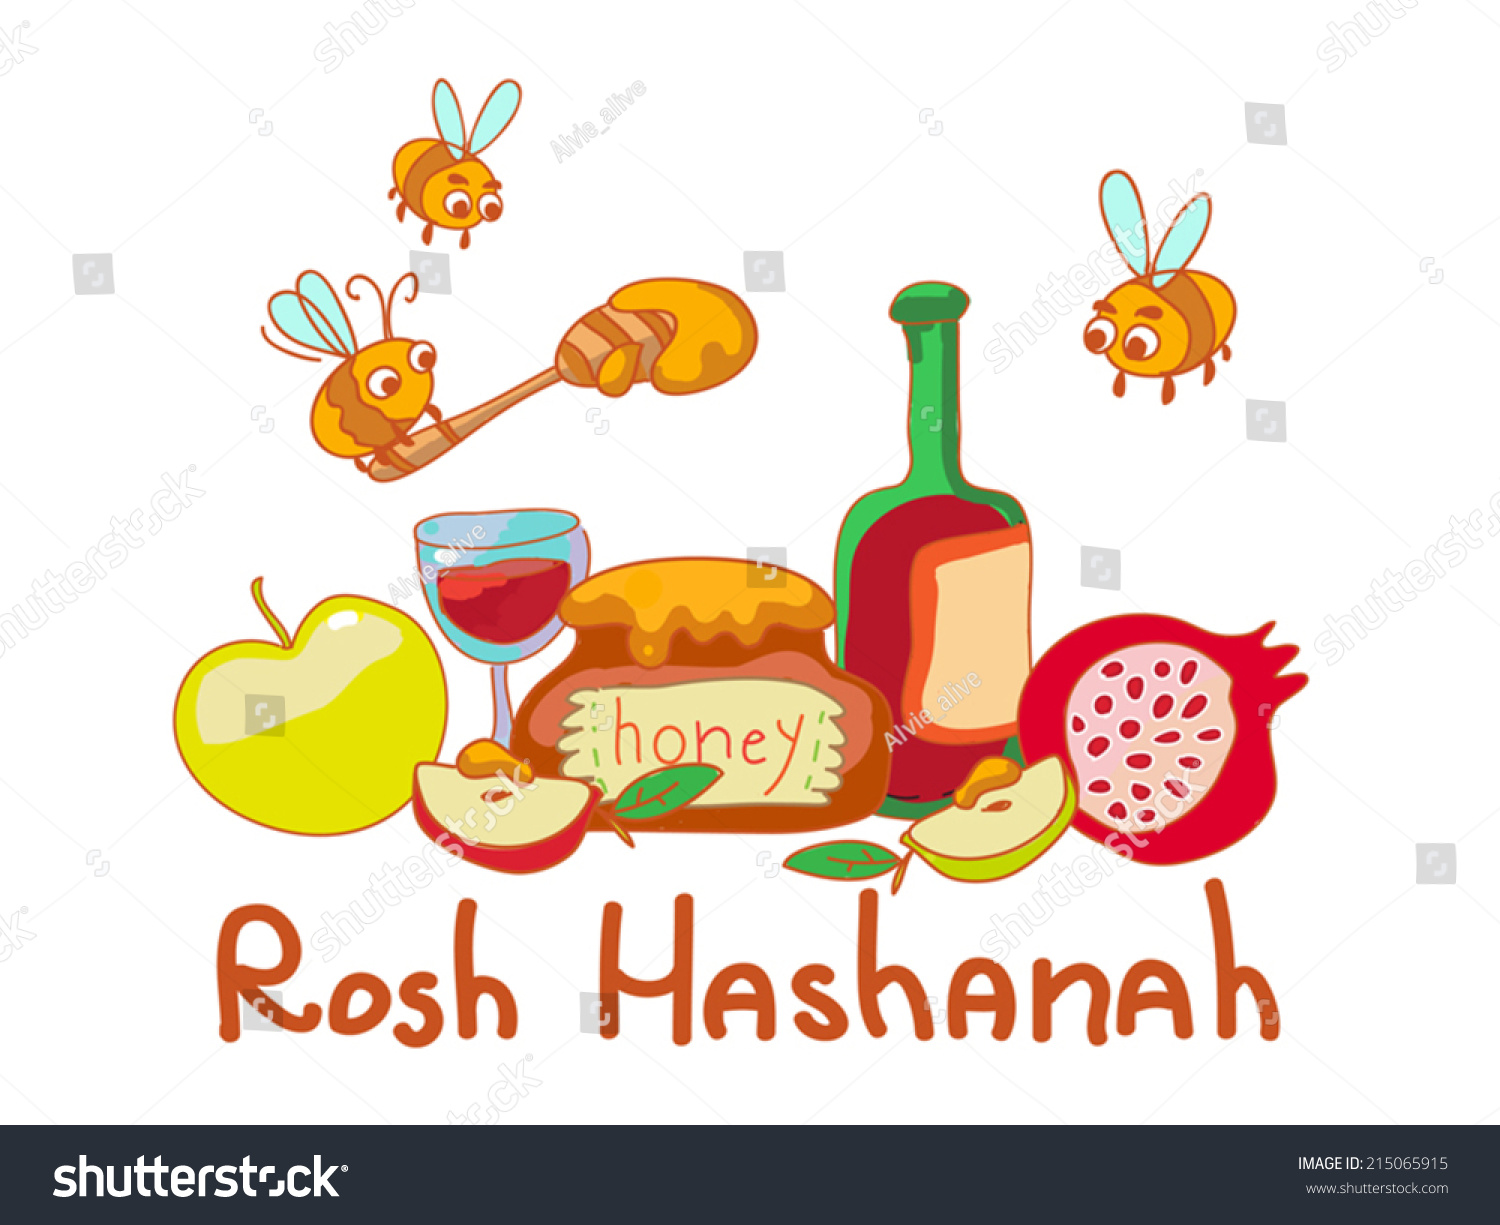 Rosh Hashanah Illustration Jewish New Year Stock Vector 215065915 ...